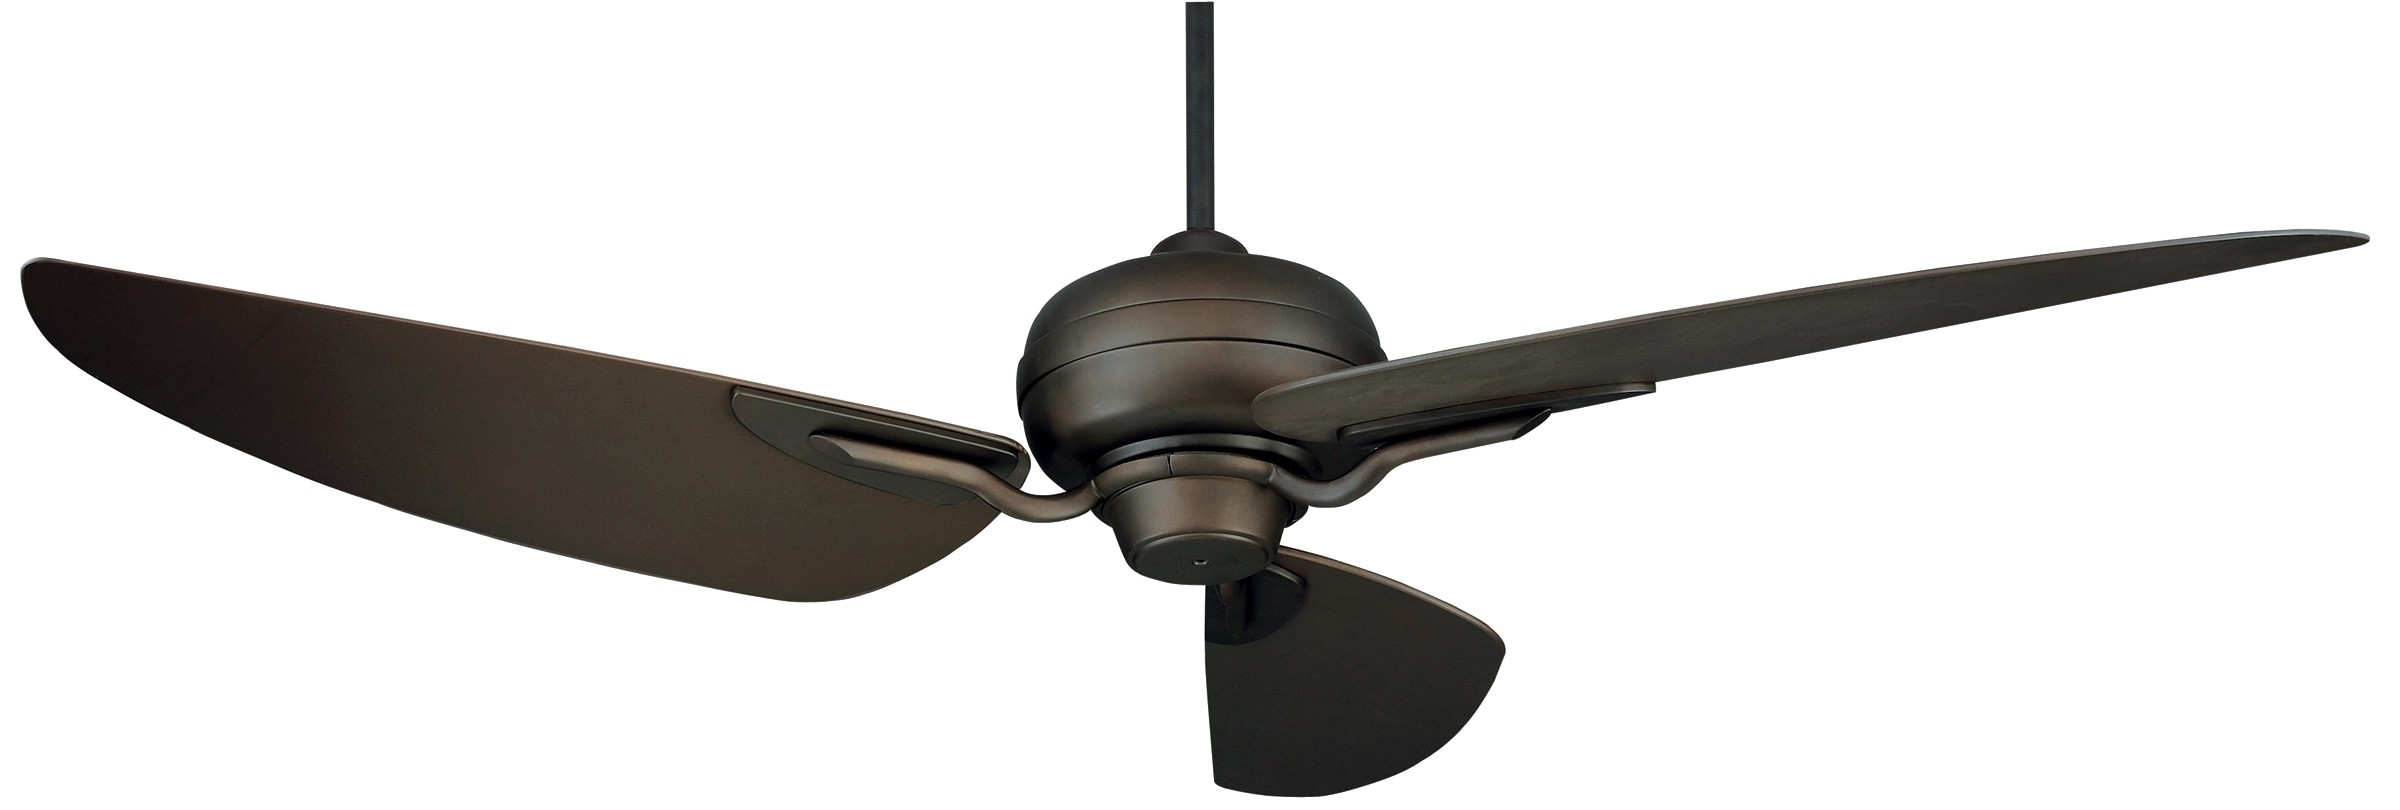 Bimini™ (Wet Location) Pertaining To Favorite Oil Rubbed Bronze Outdoor Ceiling Fans (View 3 of 20)